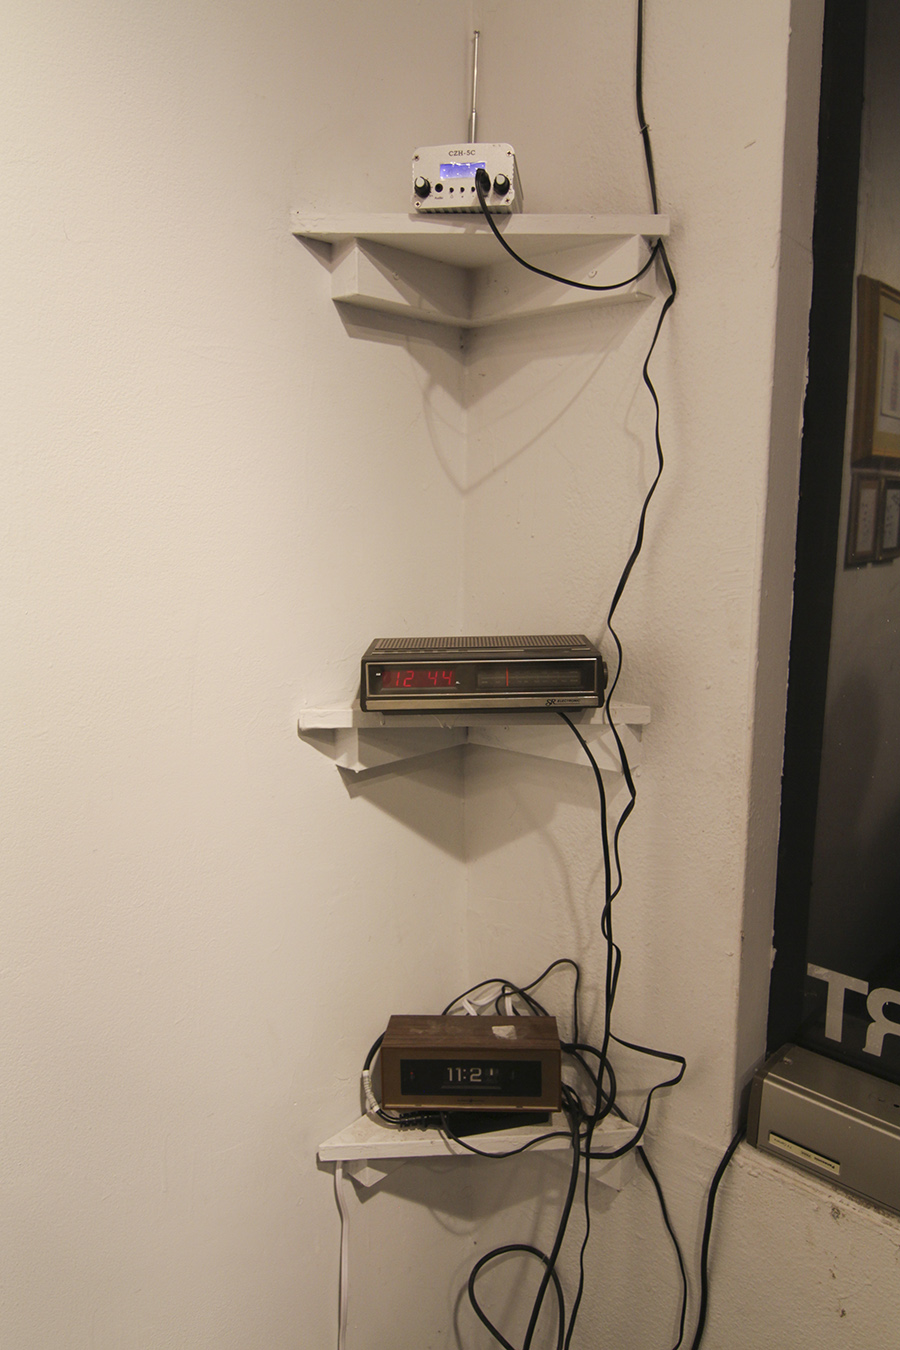 found clocks, fm transmitter, cables